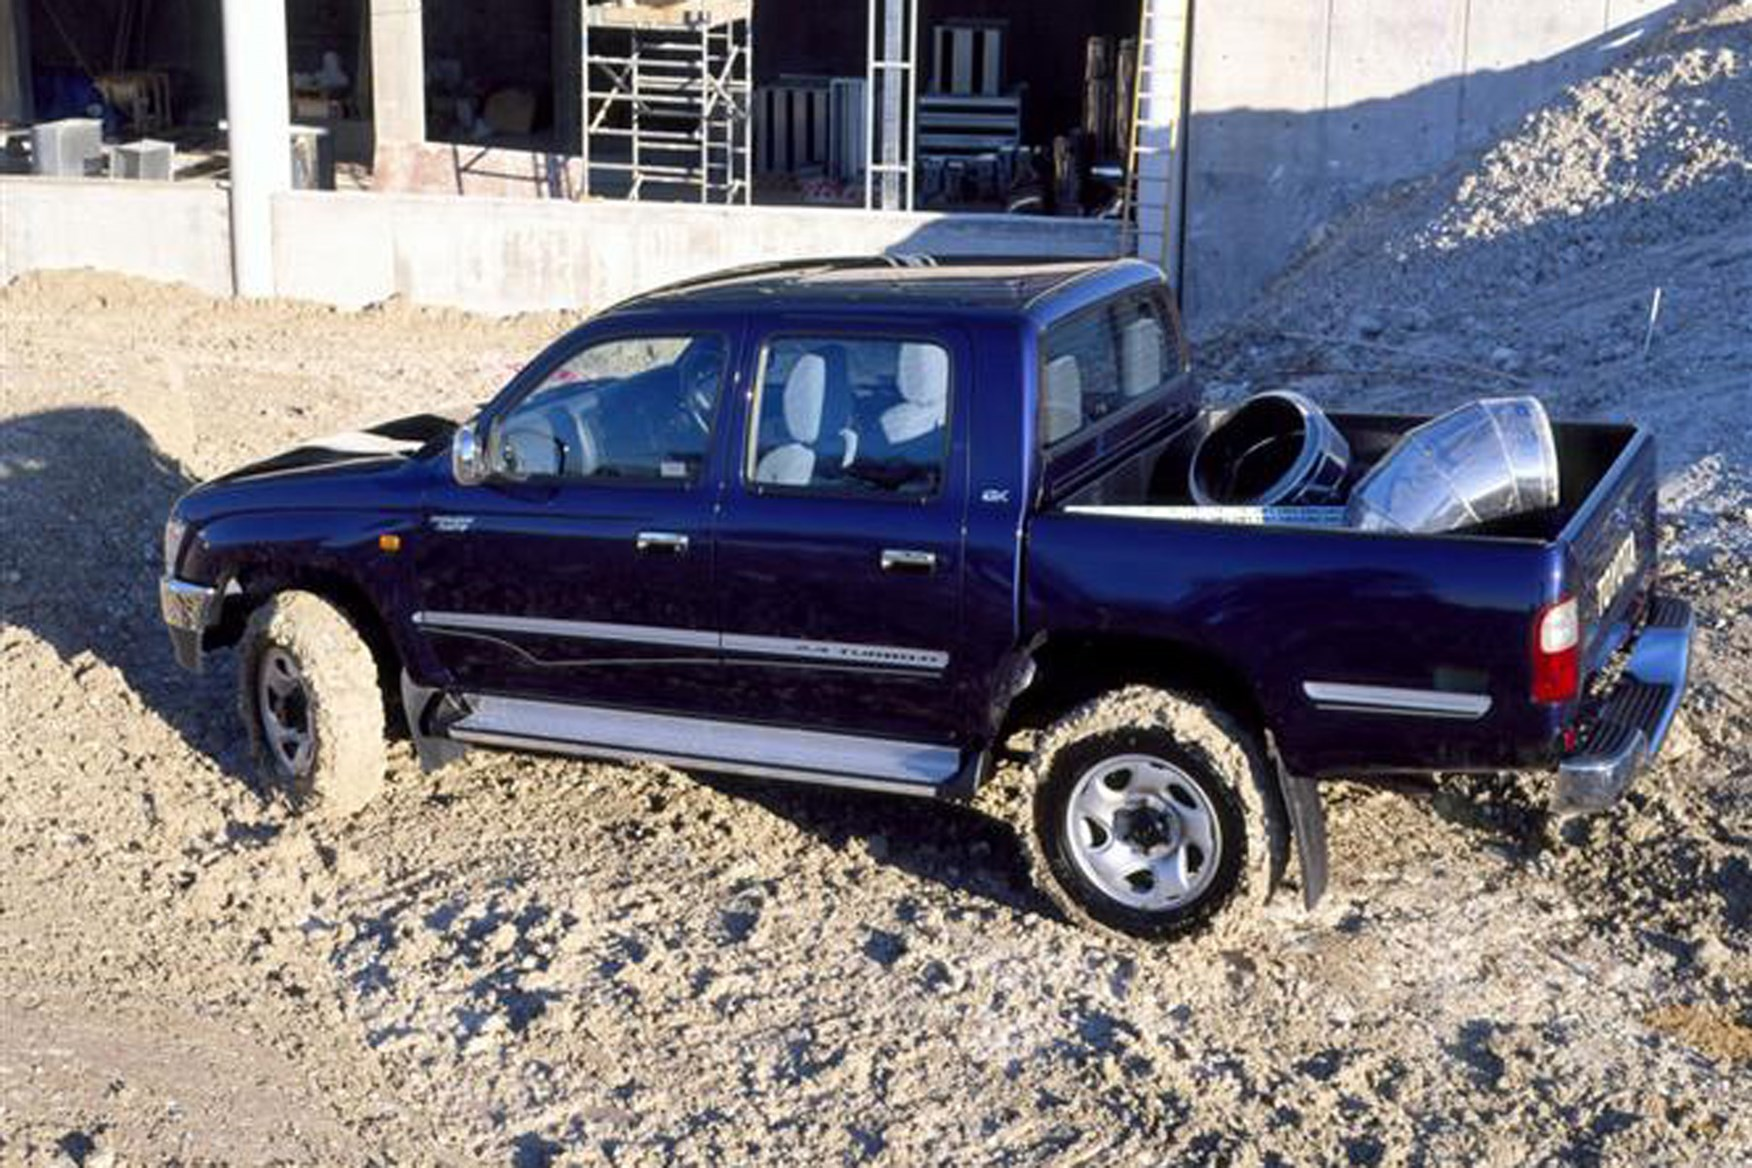 Toyota Hilux review on Parkers Vans - off-road capabilities